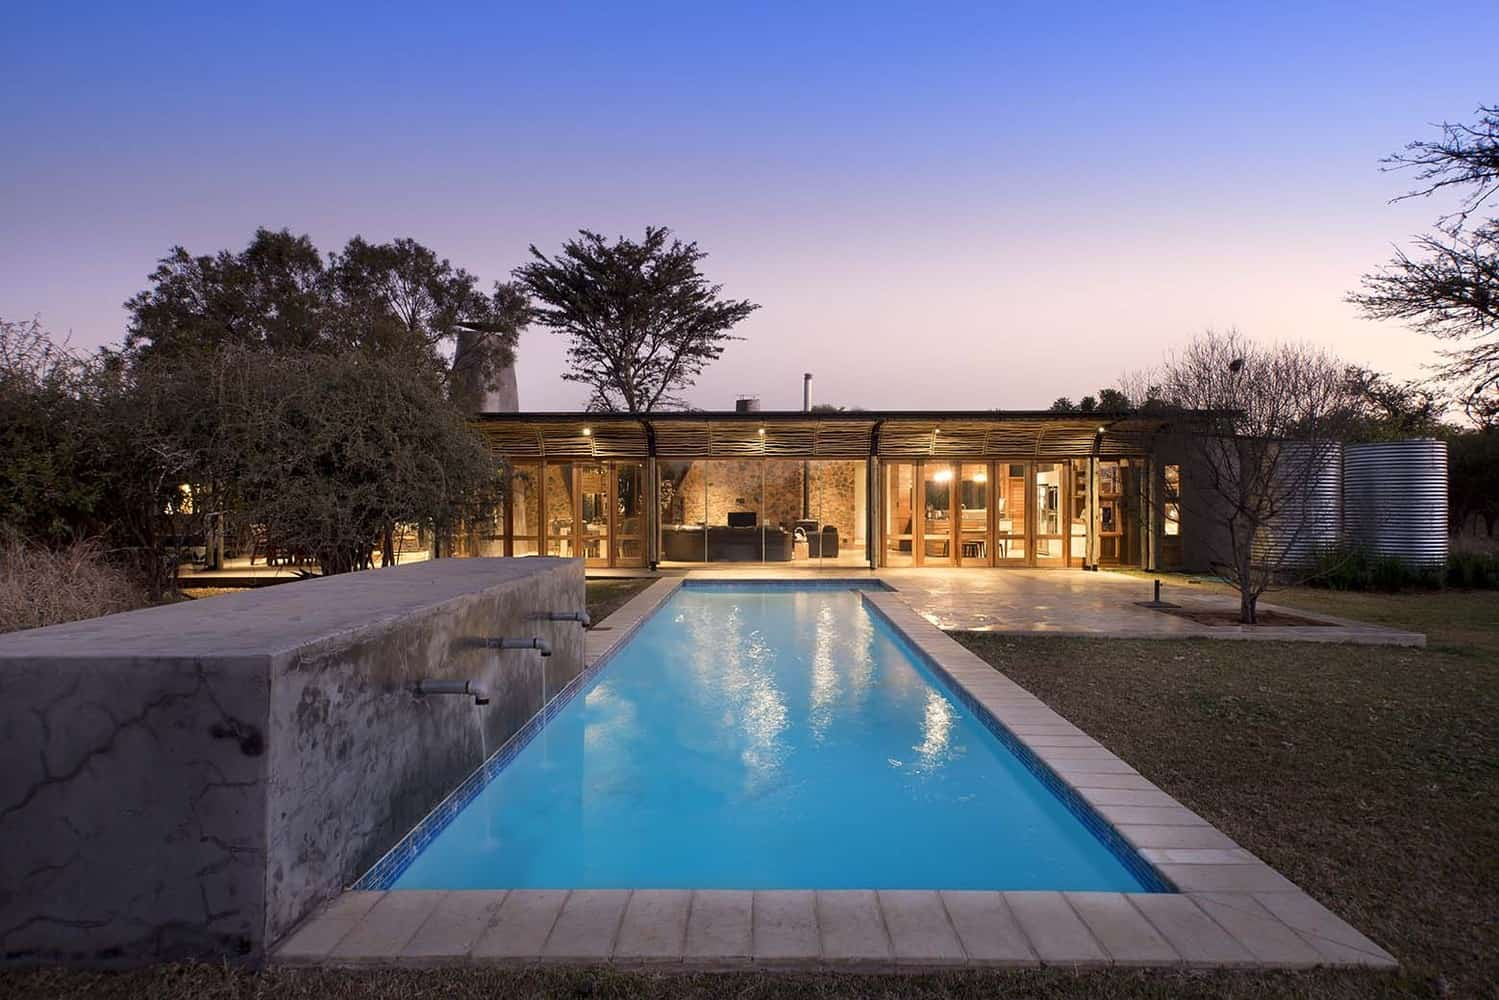 Home designed by earthworld architects in pretoria south africa